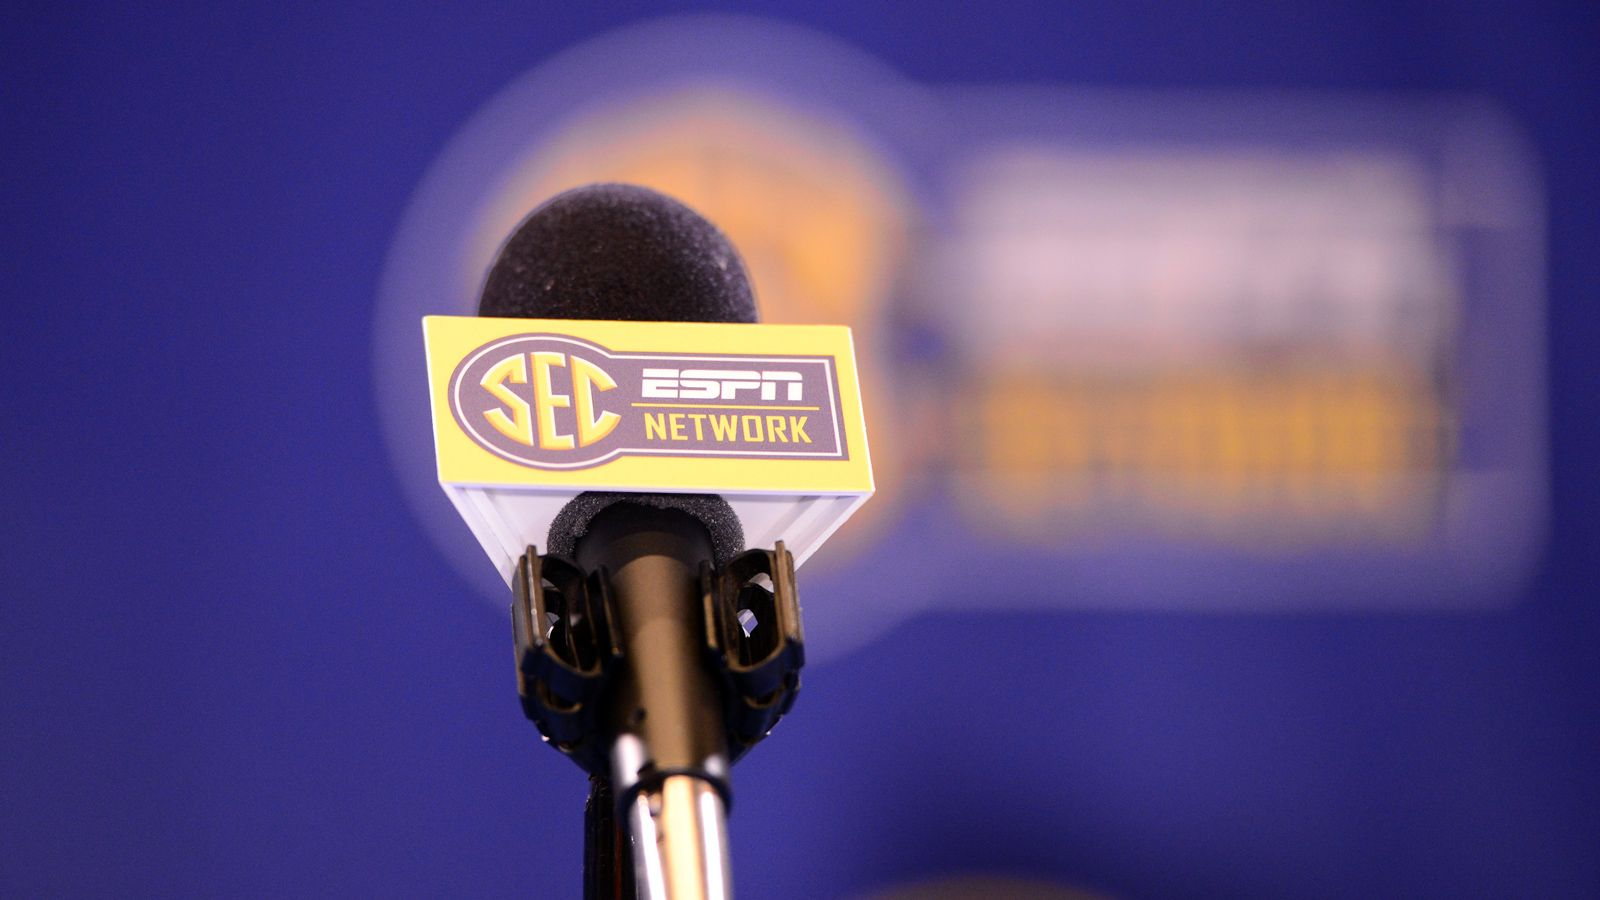 SEC Network features wall-to-wall coverage from Atlanta